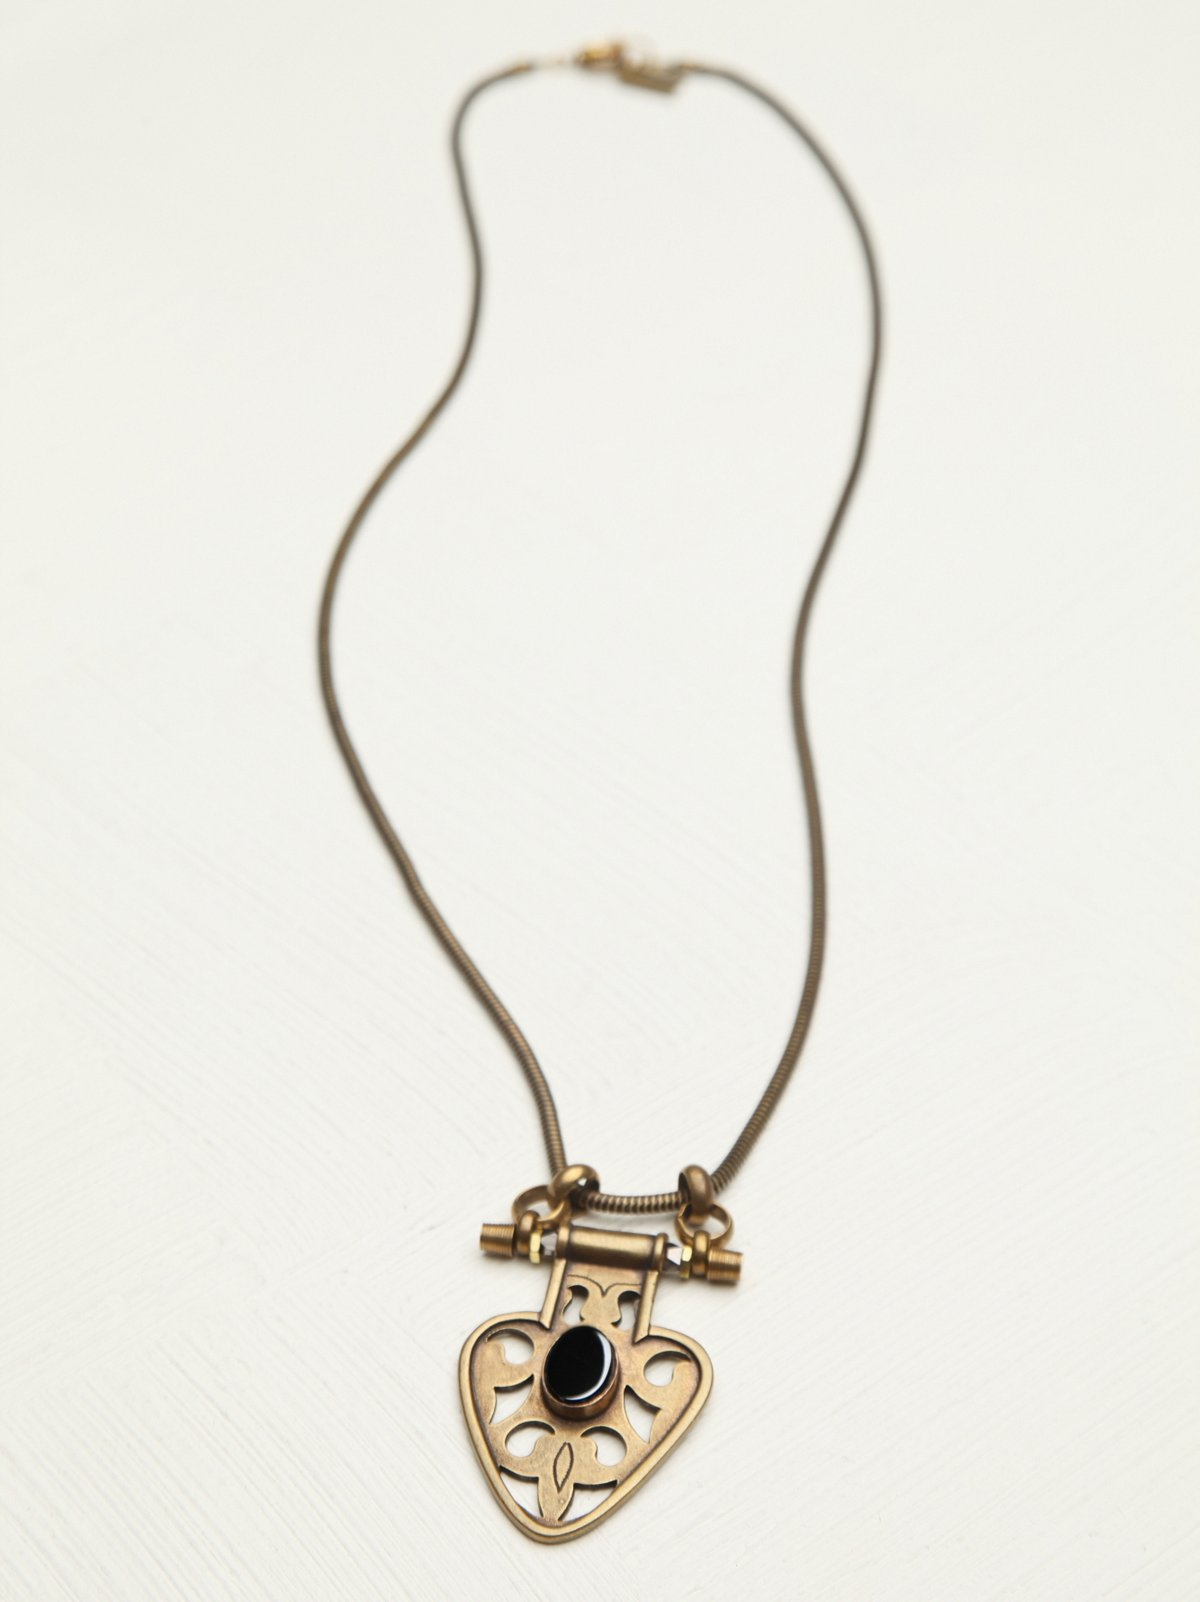 Kai Necklace Pendant